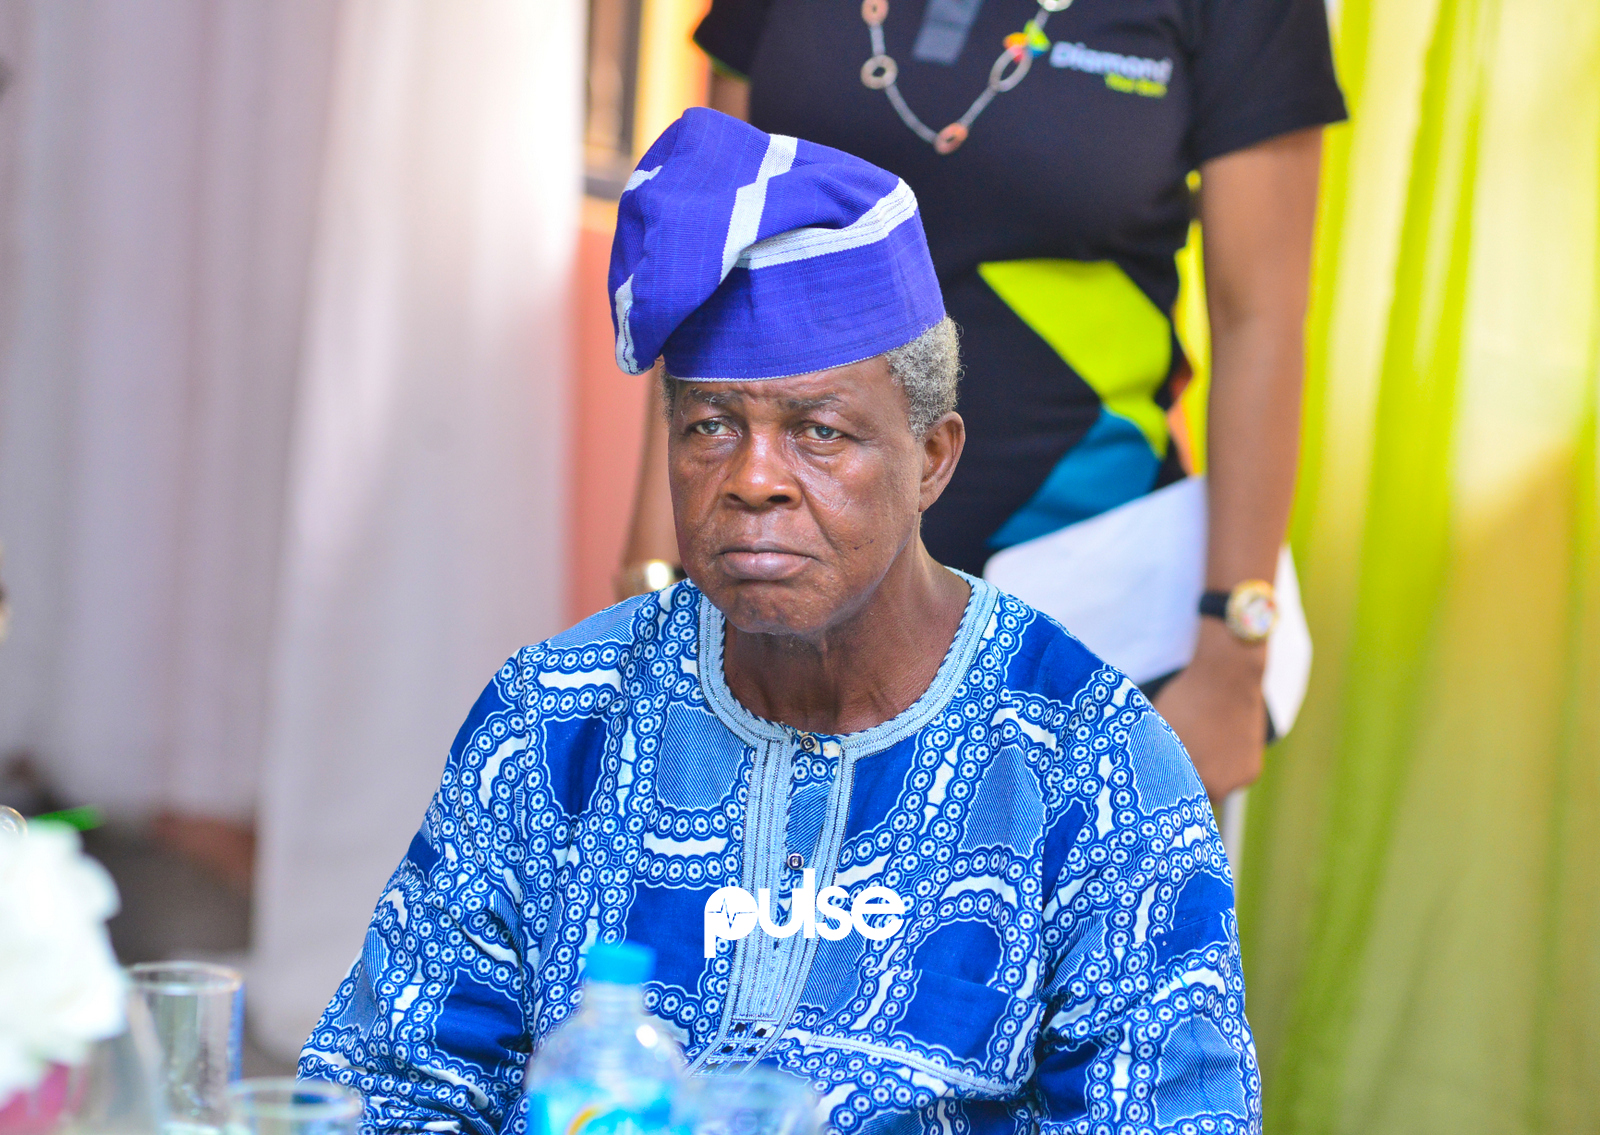 A senior citizen at Diamond Xtra savings promo season 11 Launch